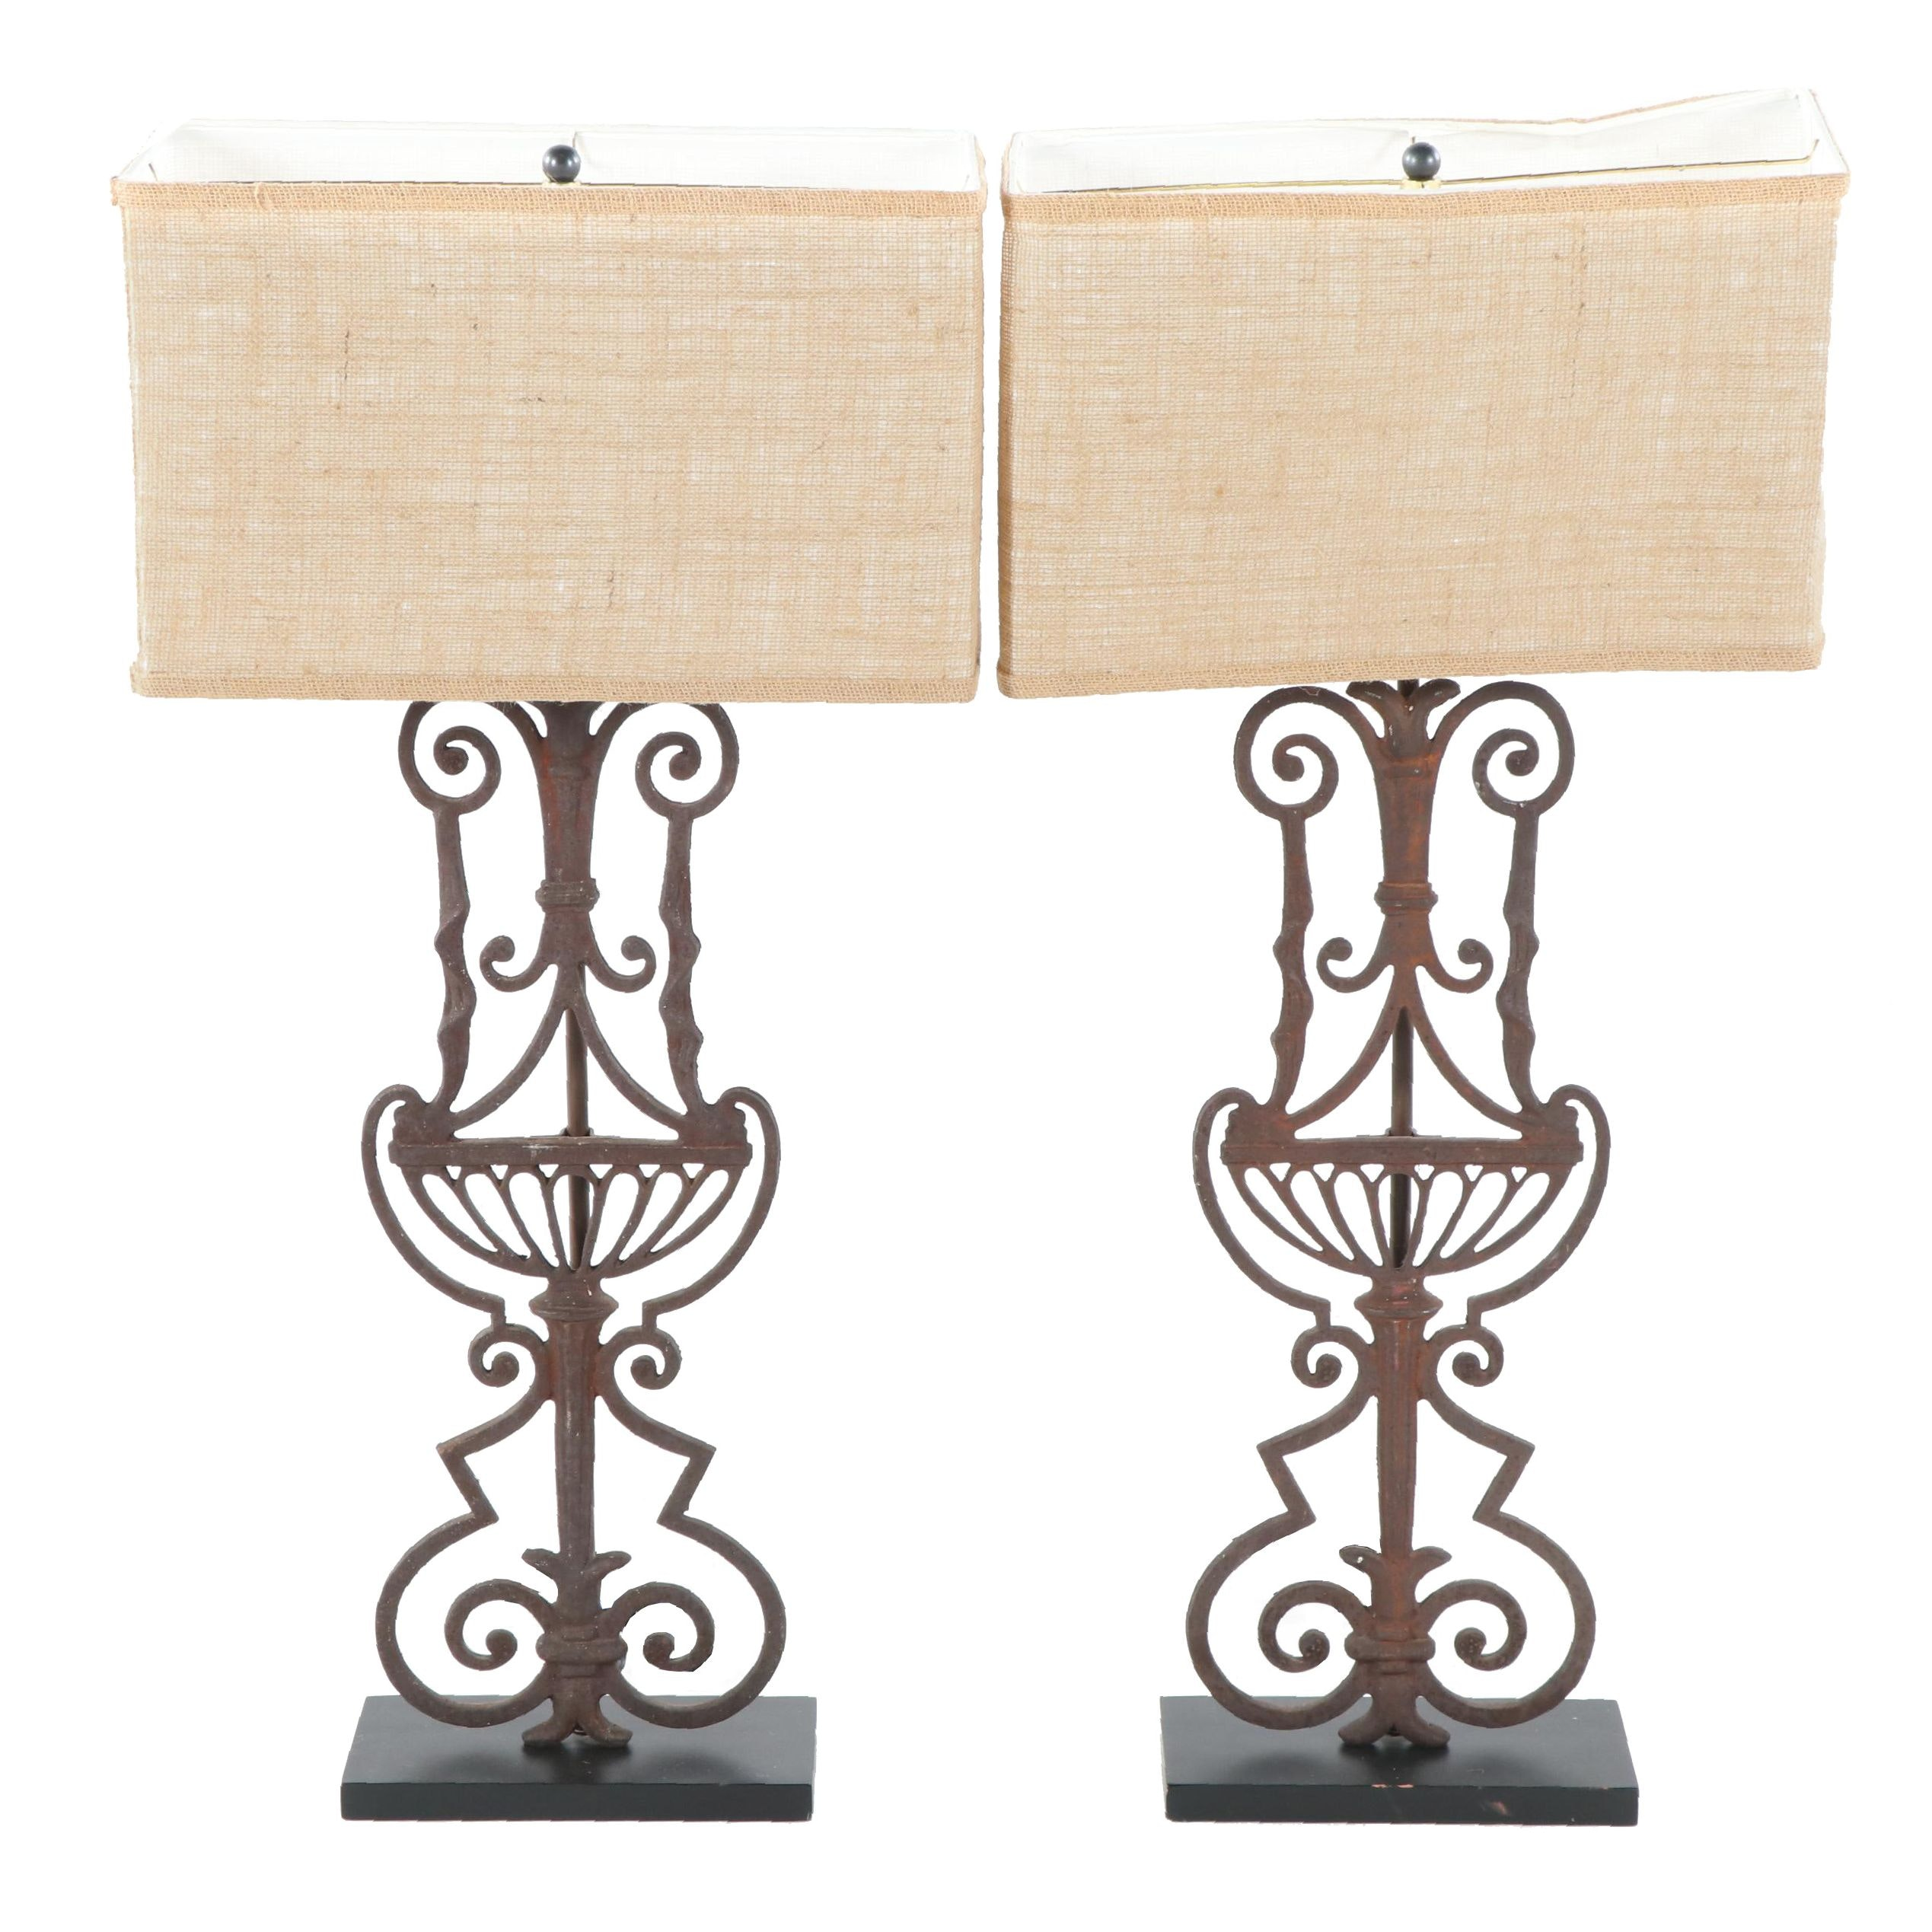 Converted Iron Openwork Table Lamps with Burlap Shades